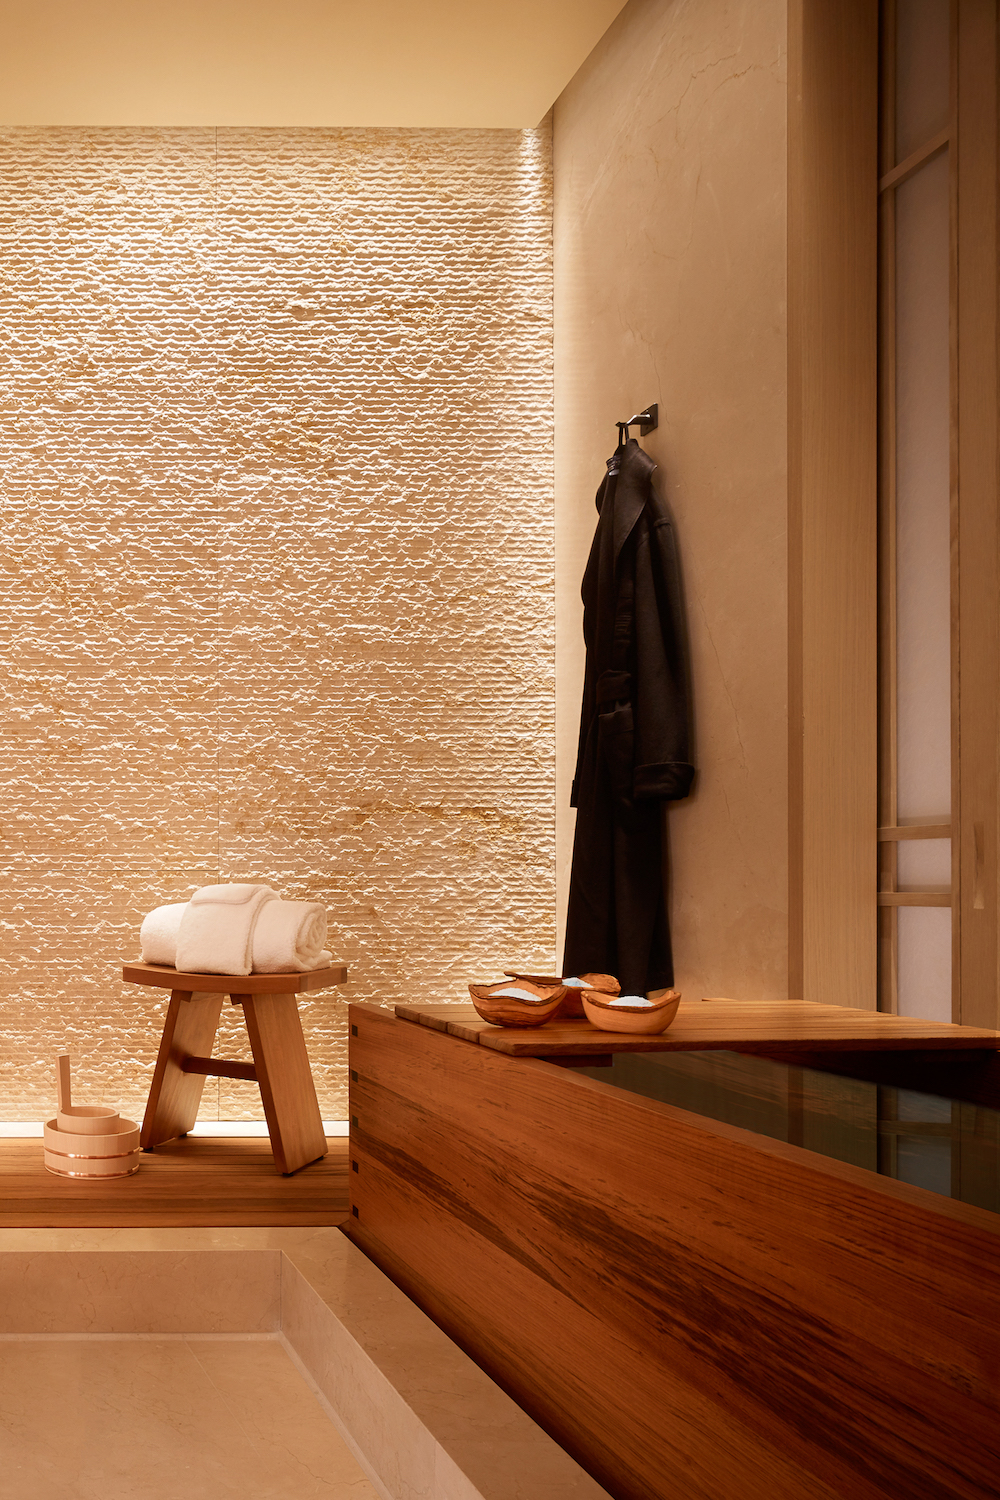 Image caption: A sneak peek of a bathroom inside the hotel shows a minimalist design scheme. | Image credit: Nobu Hospitality